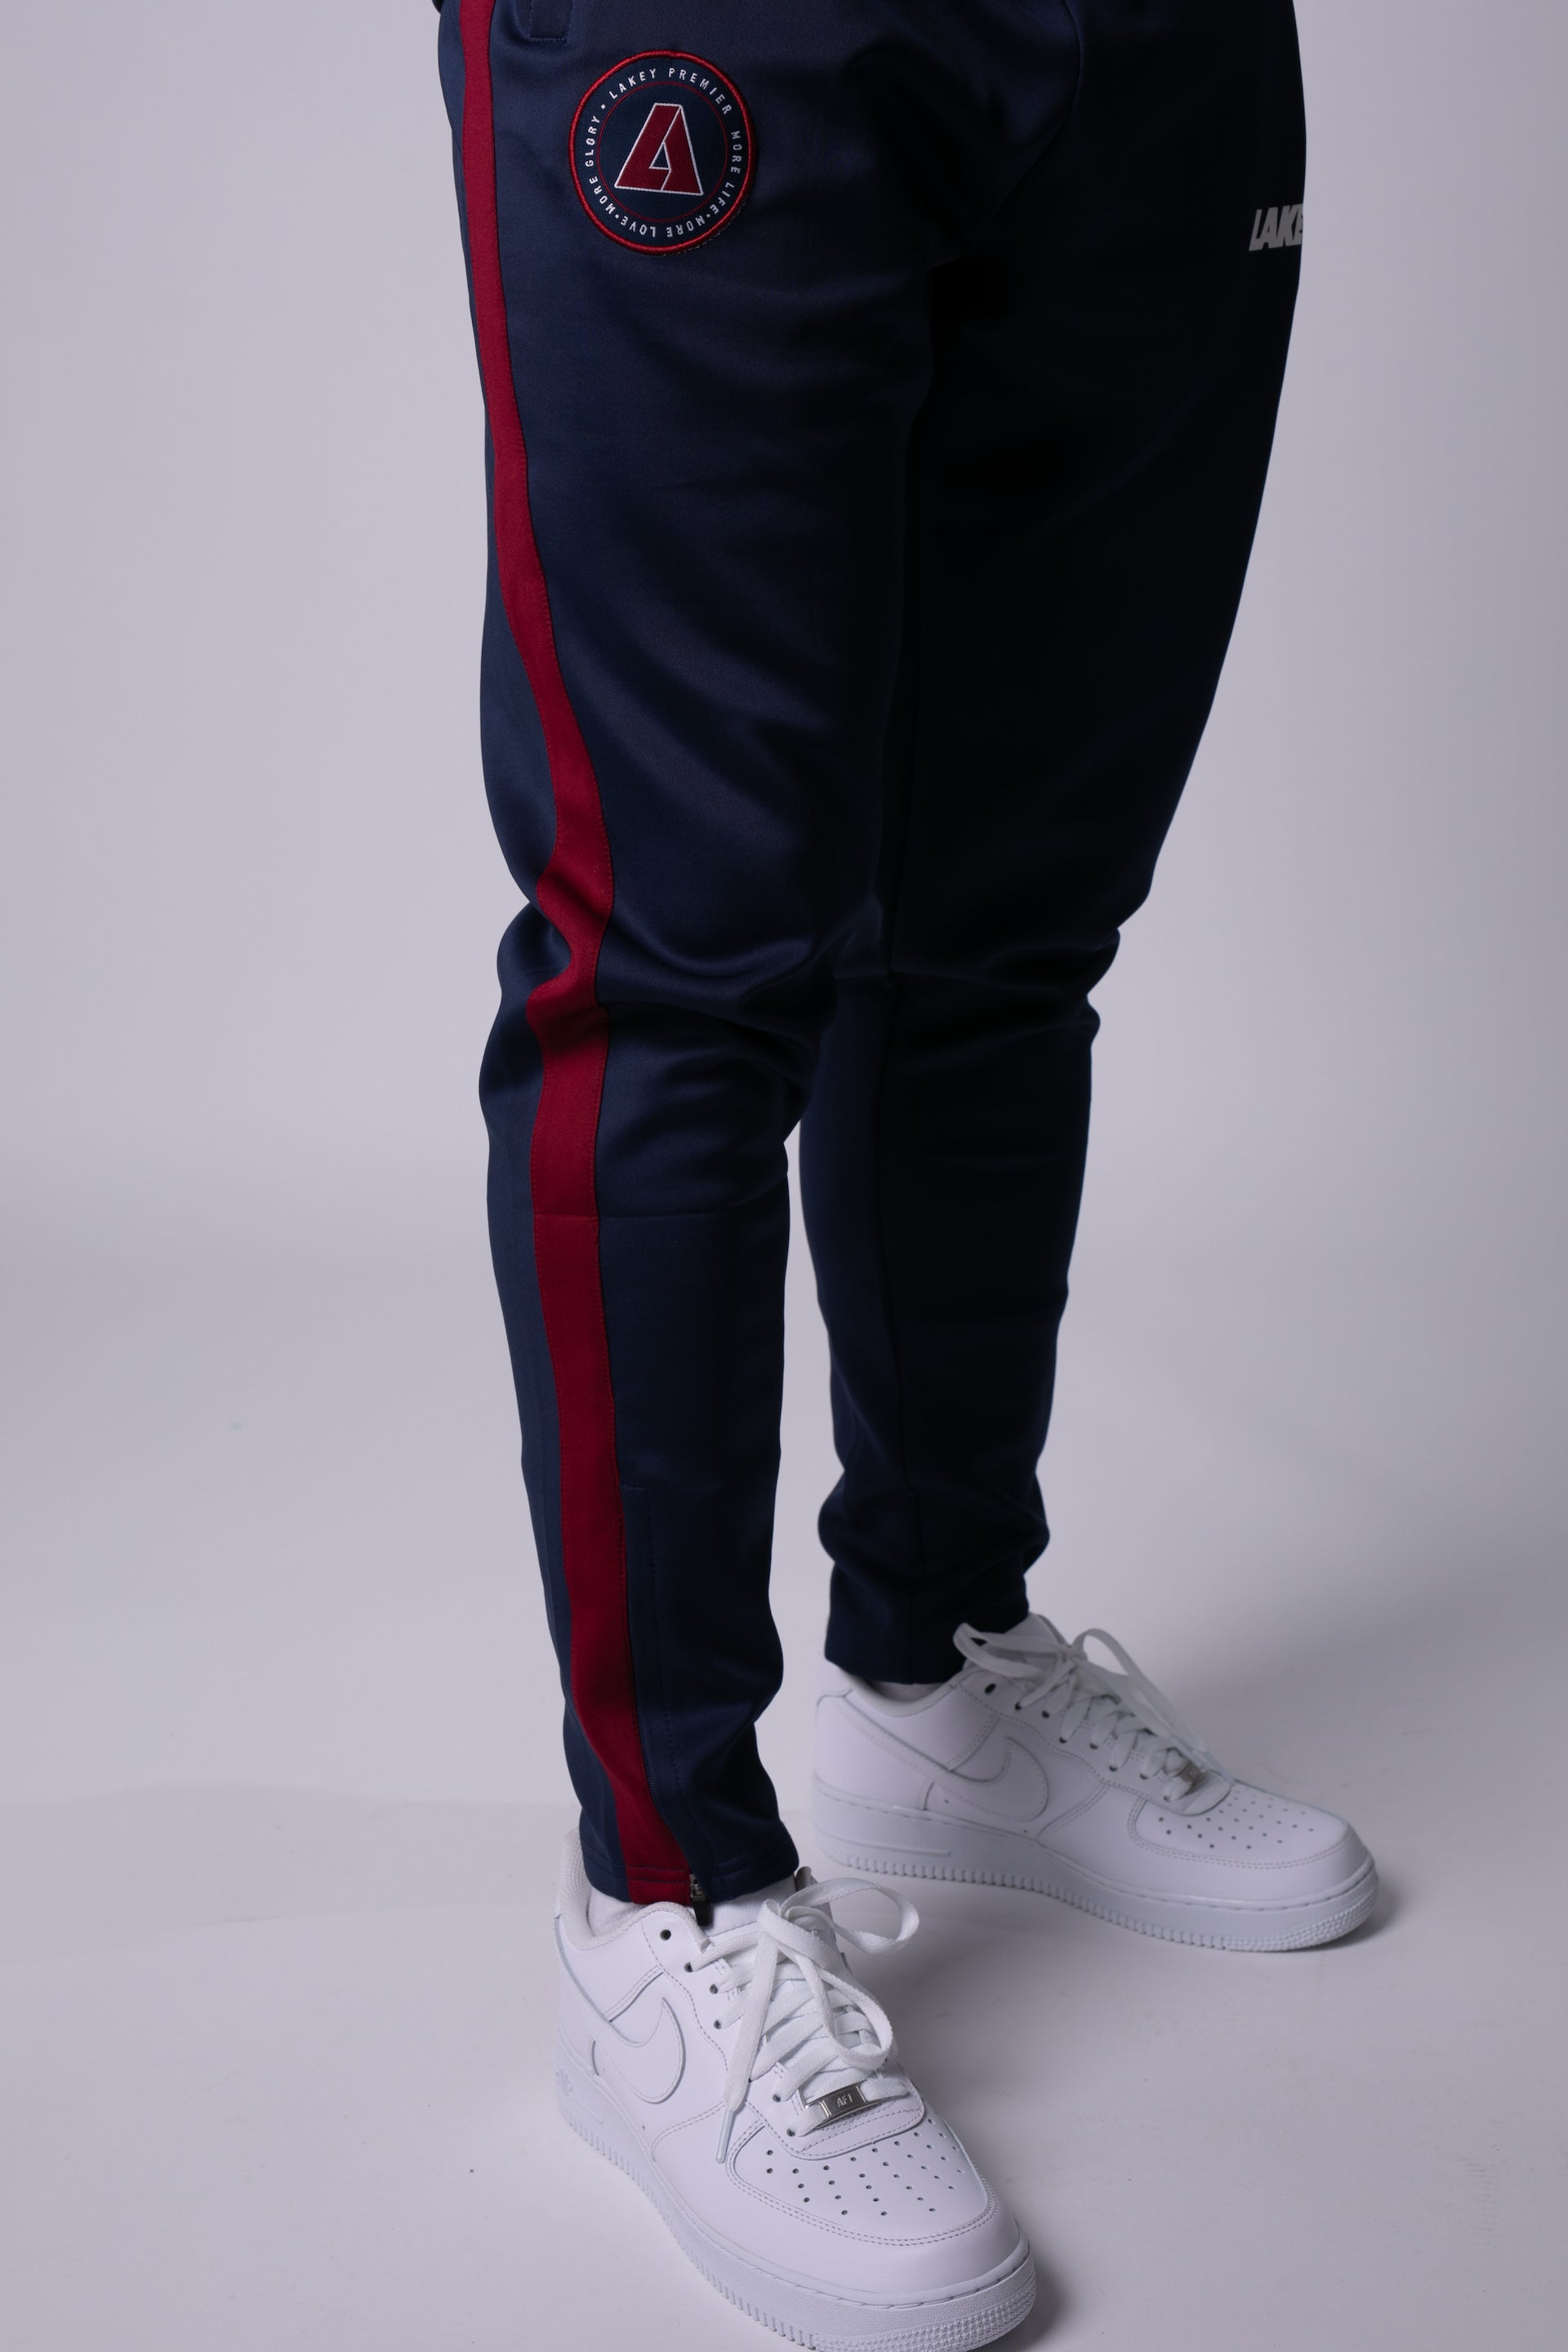 PREMIER POLY TRACKPANTS - NAVY/MAROON - Lakey